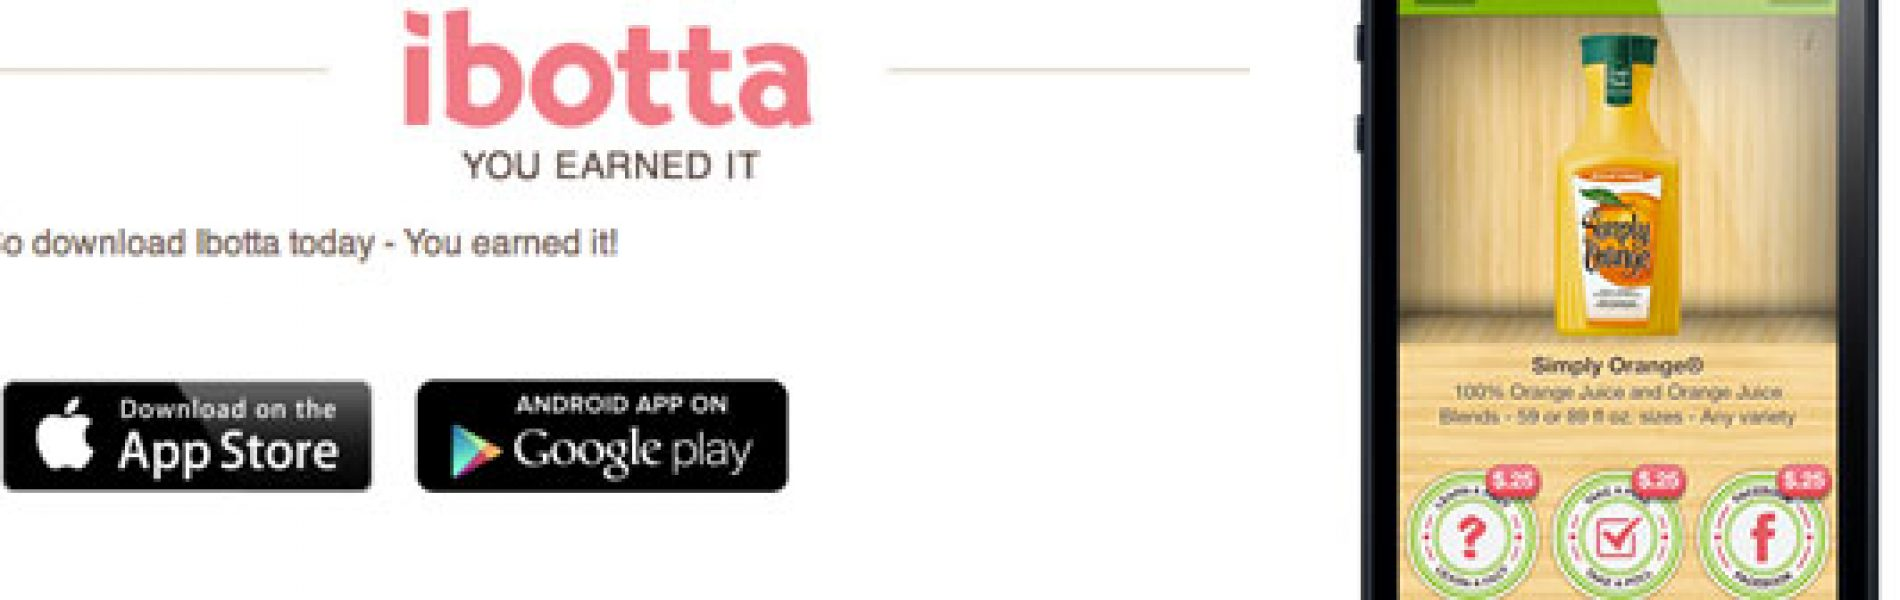 Ibotta: The Shopping Rewards App That Consumes the Consumer